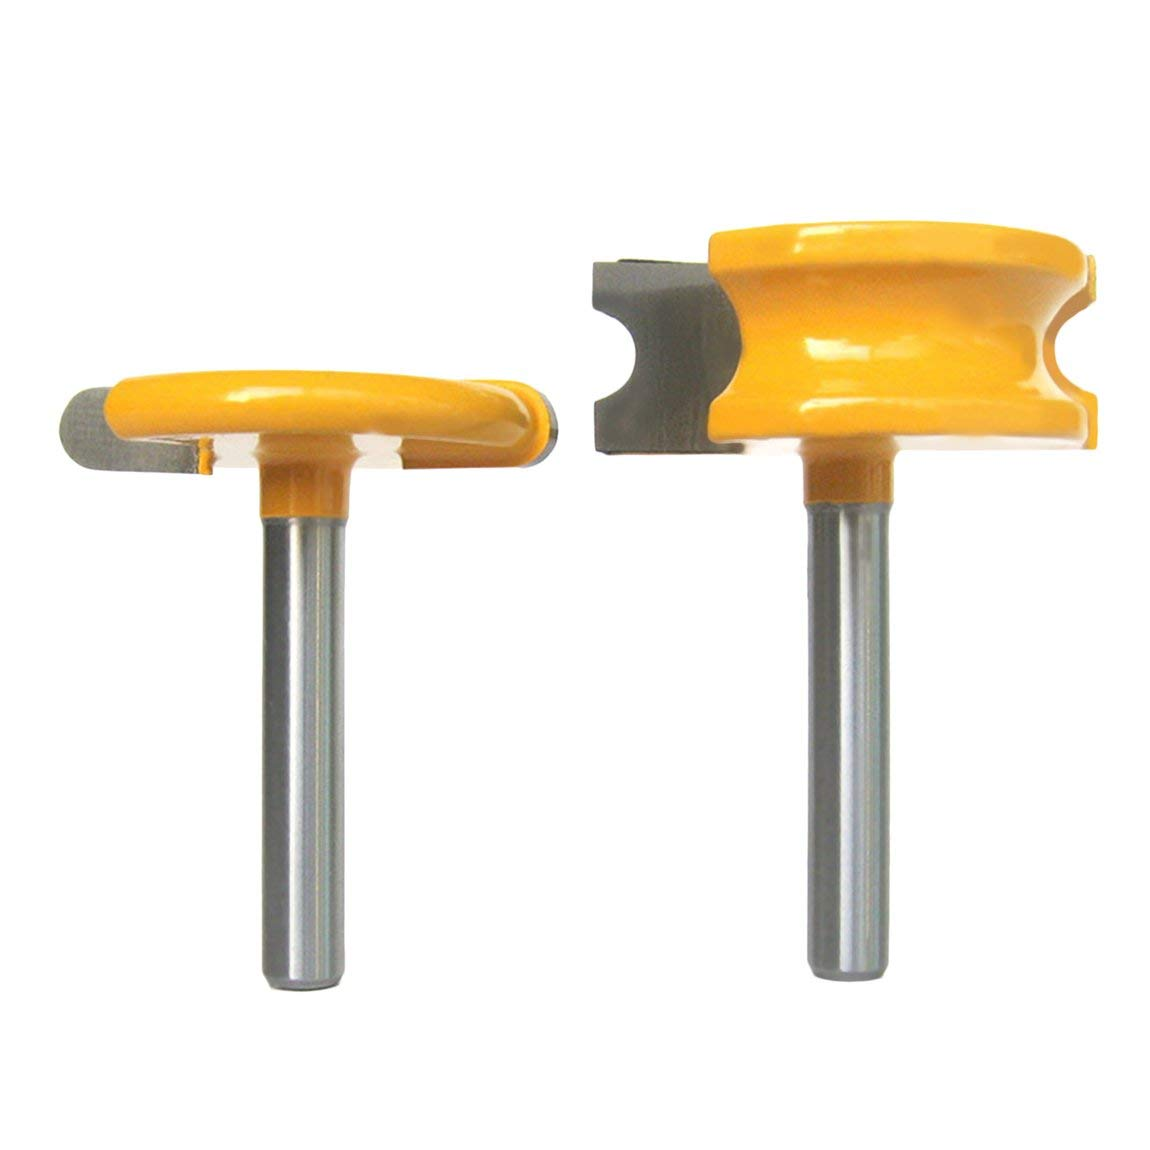 2pcs/Set Practical 1/4'' Shank 1/4'' Dia Canoe Flute and Bead Router Bits Set for Woodworking High Hardness Cutting Tool - Yellow&Silvery SeniorMar